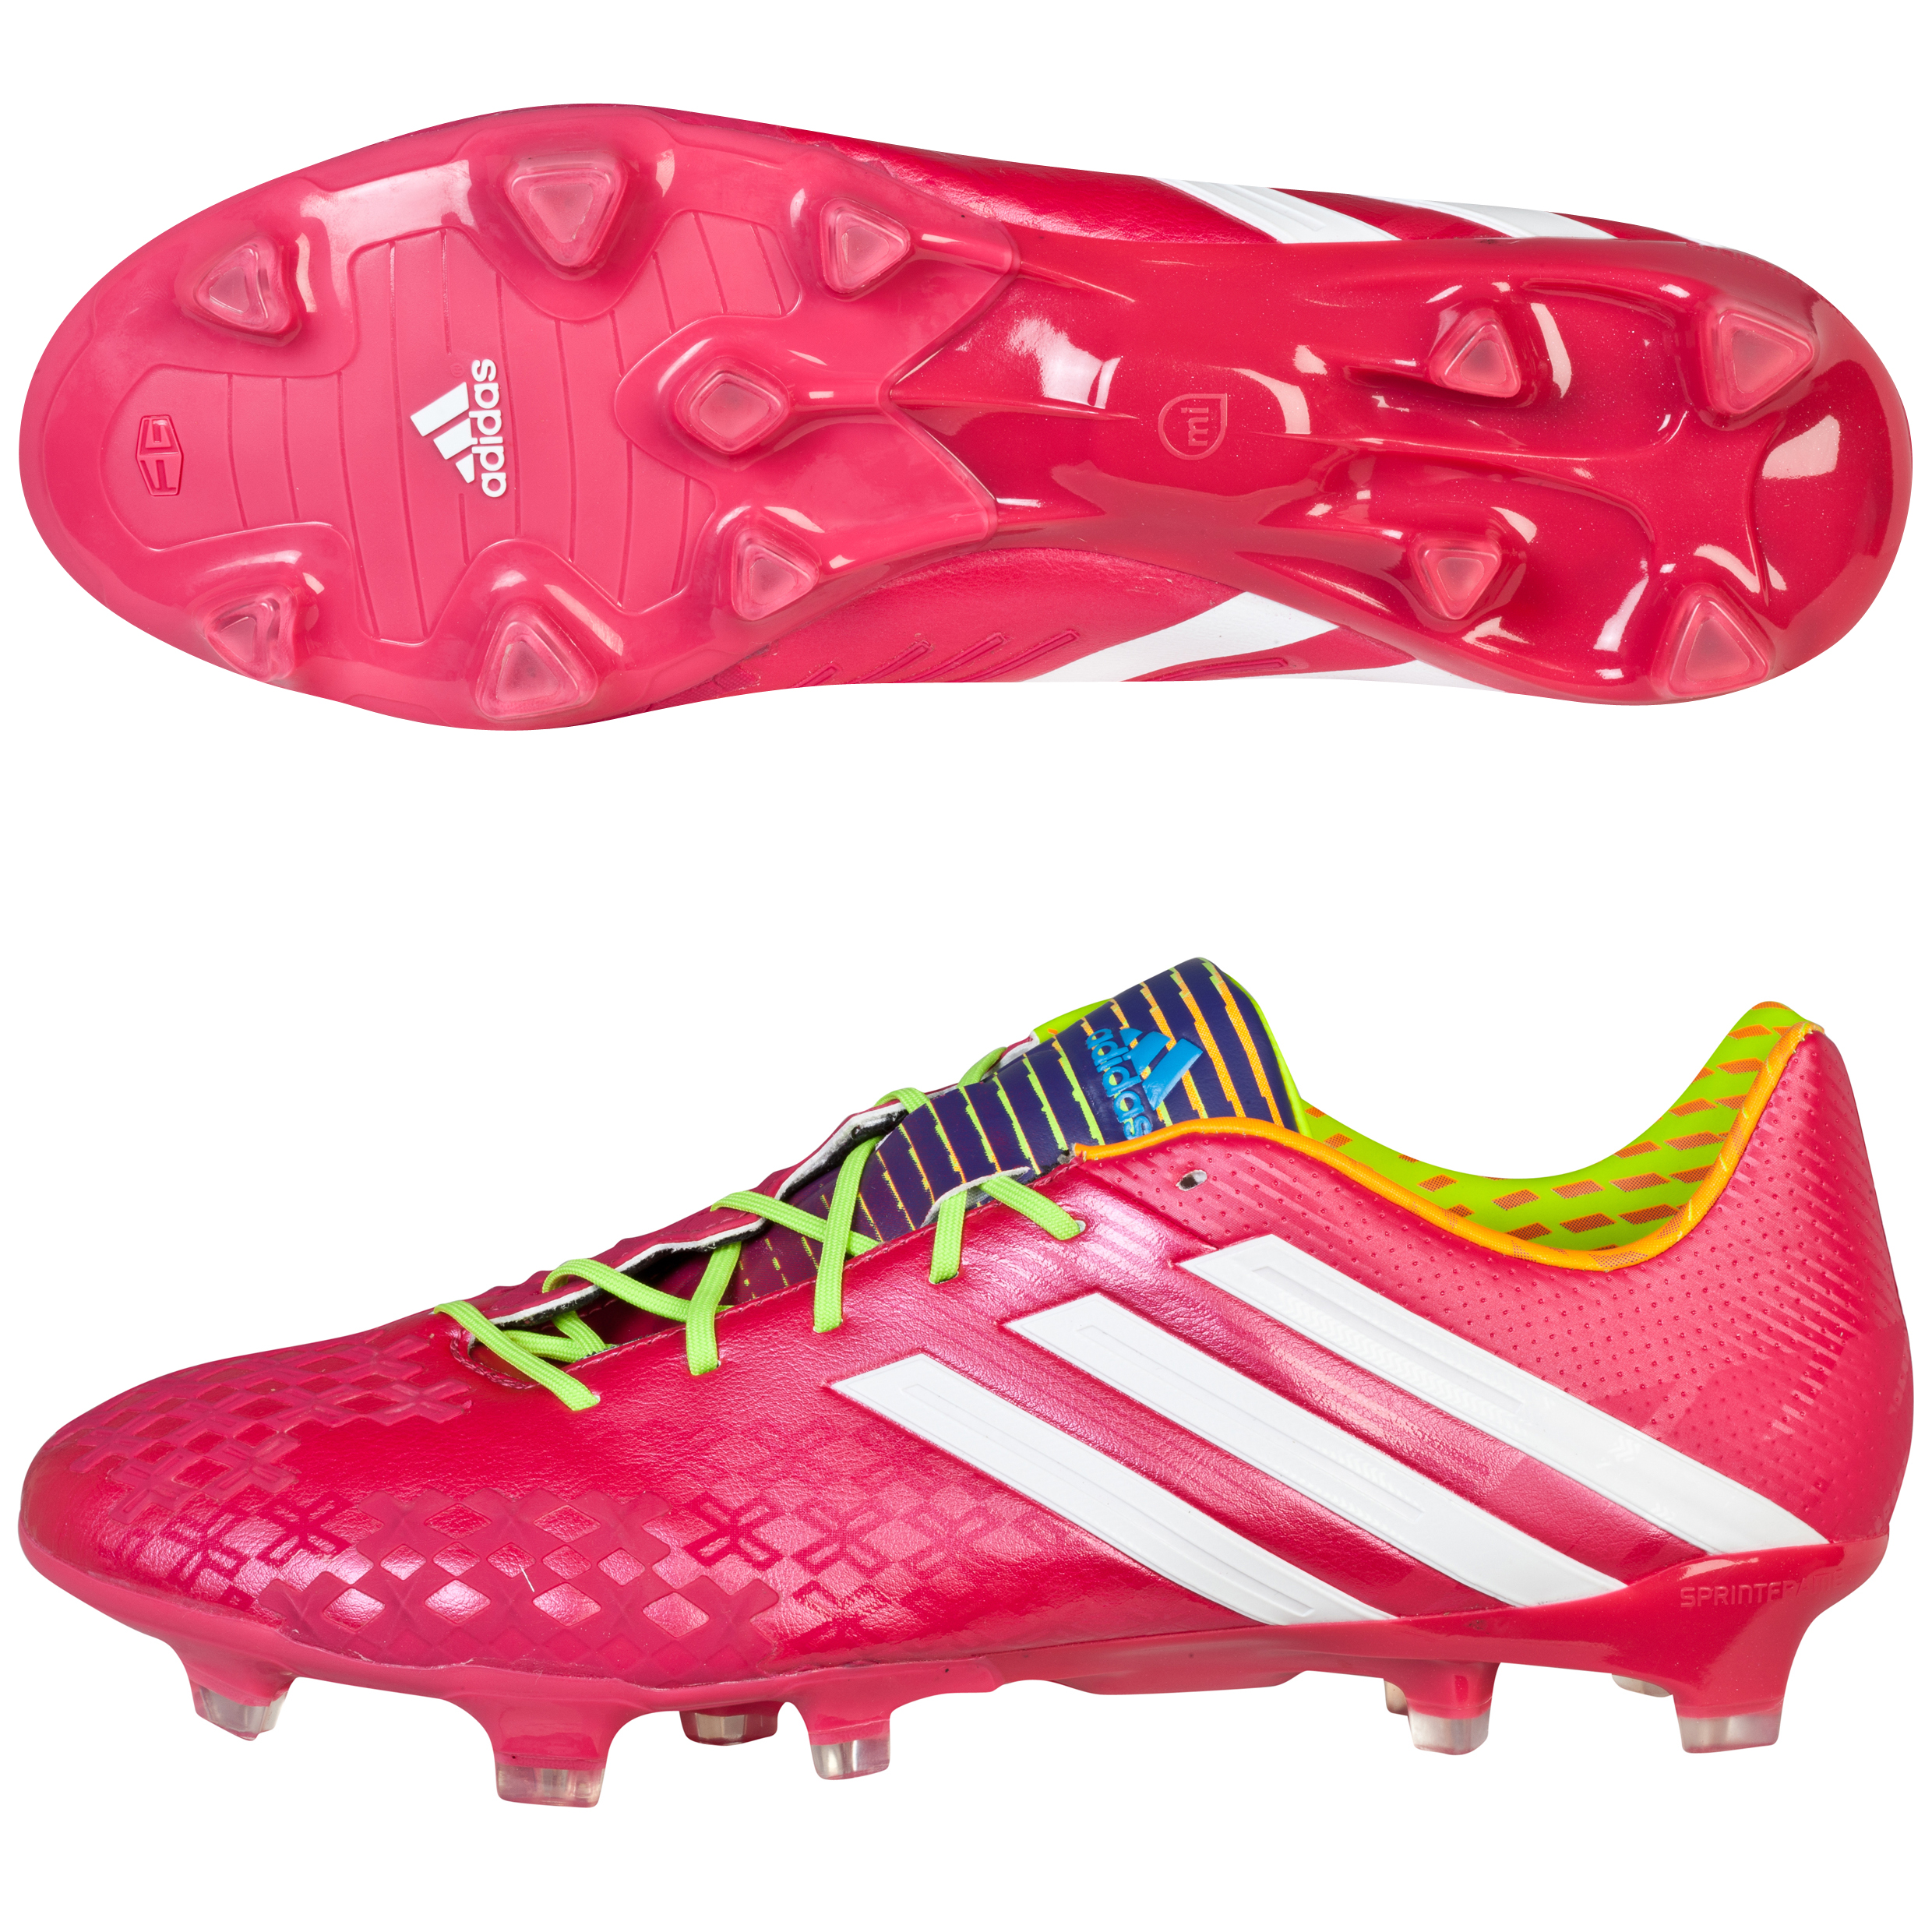 Adidas Predator LZ TRX Firm Ground Football Boots Pink